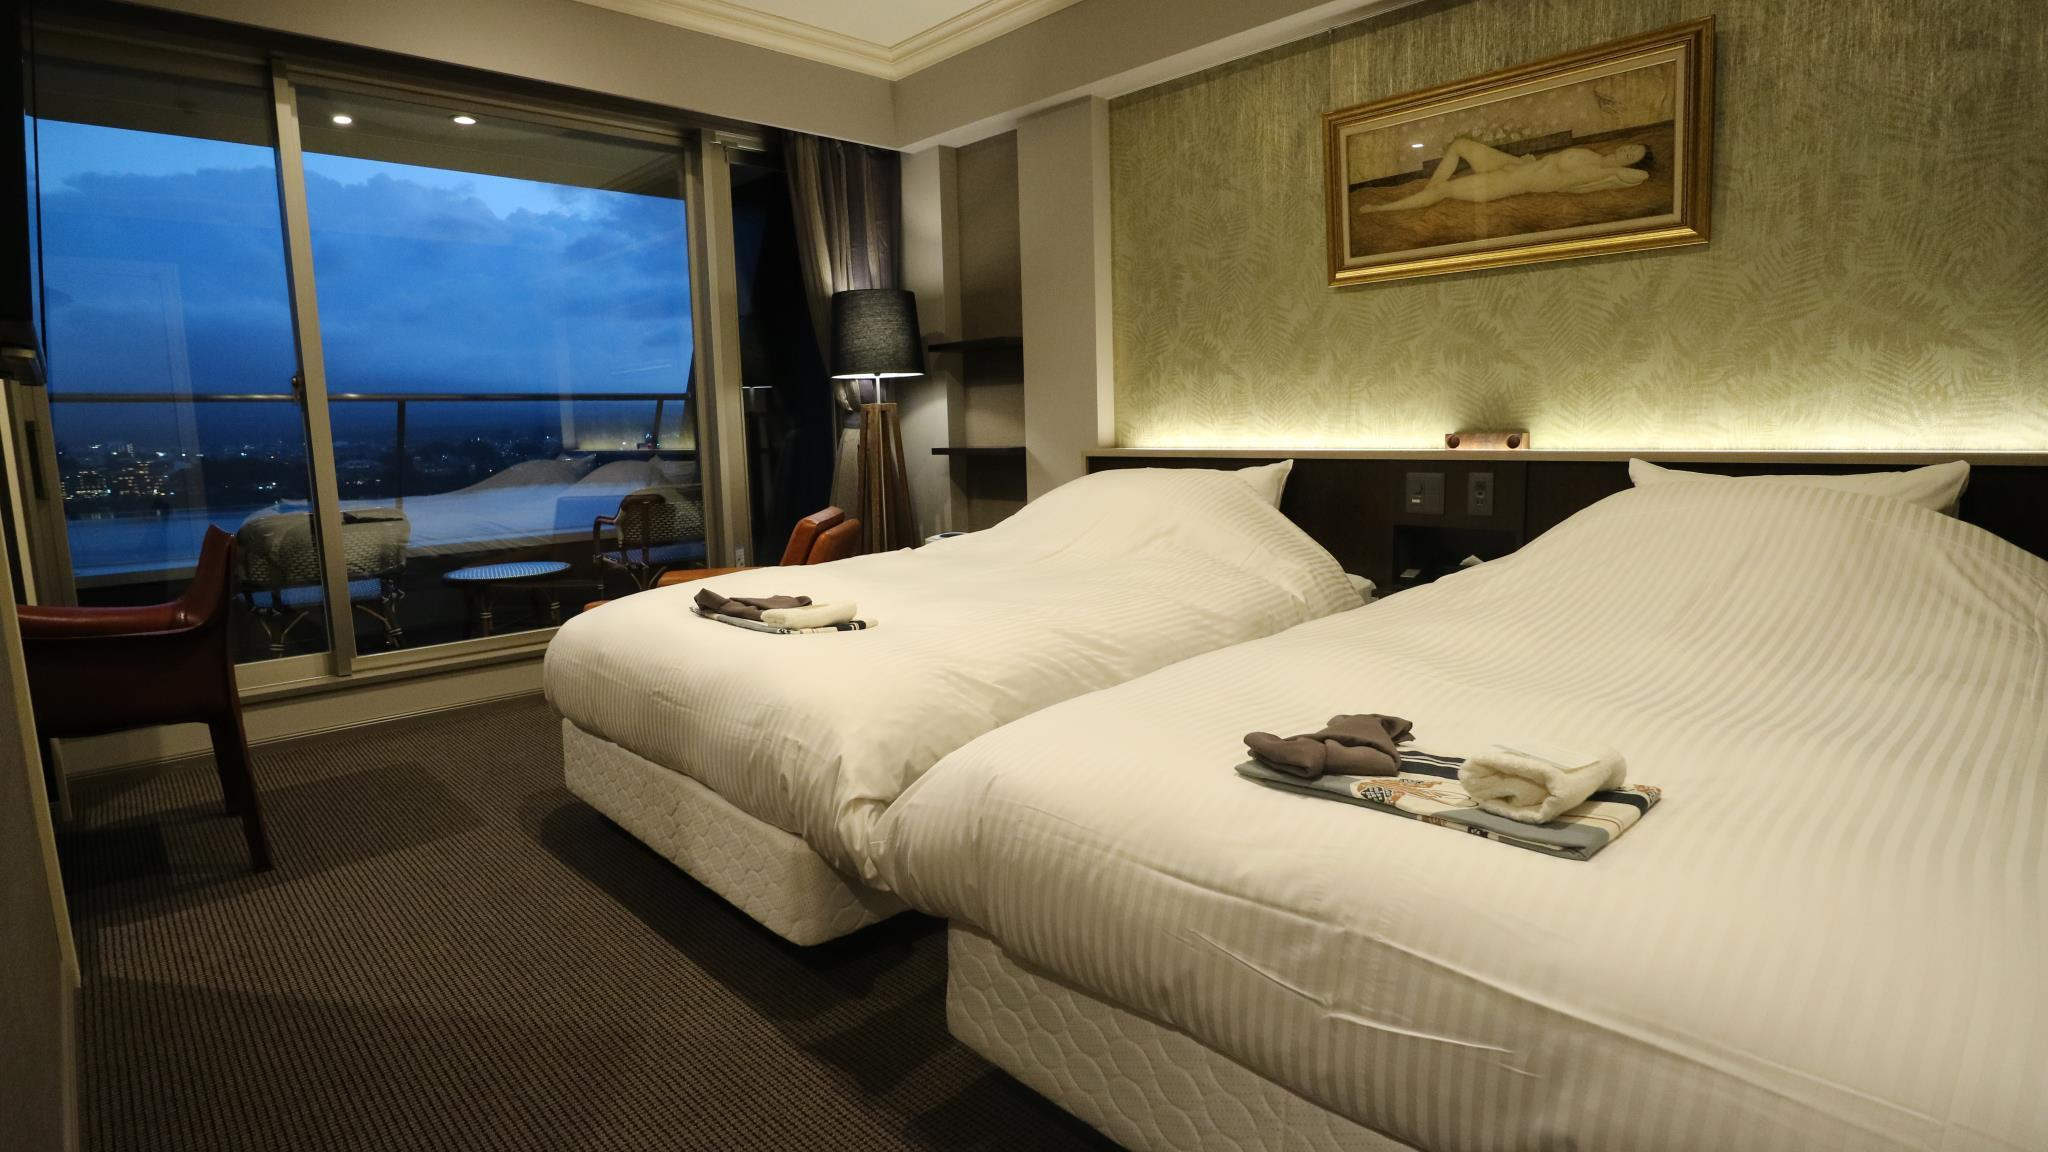 Upper Floor Mount Fuji and Lake View Twin Room with Balcony - Non-Smoking